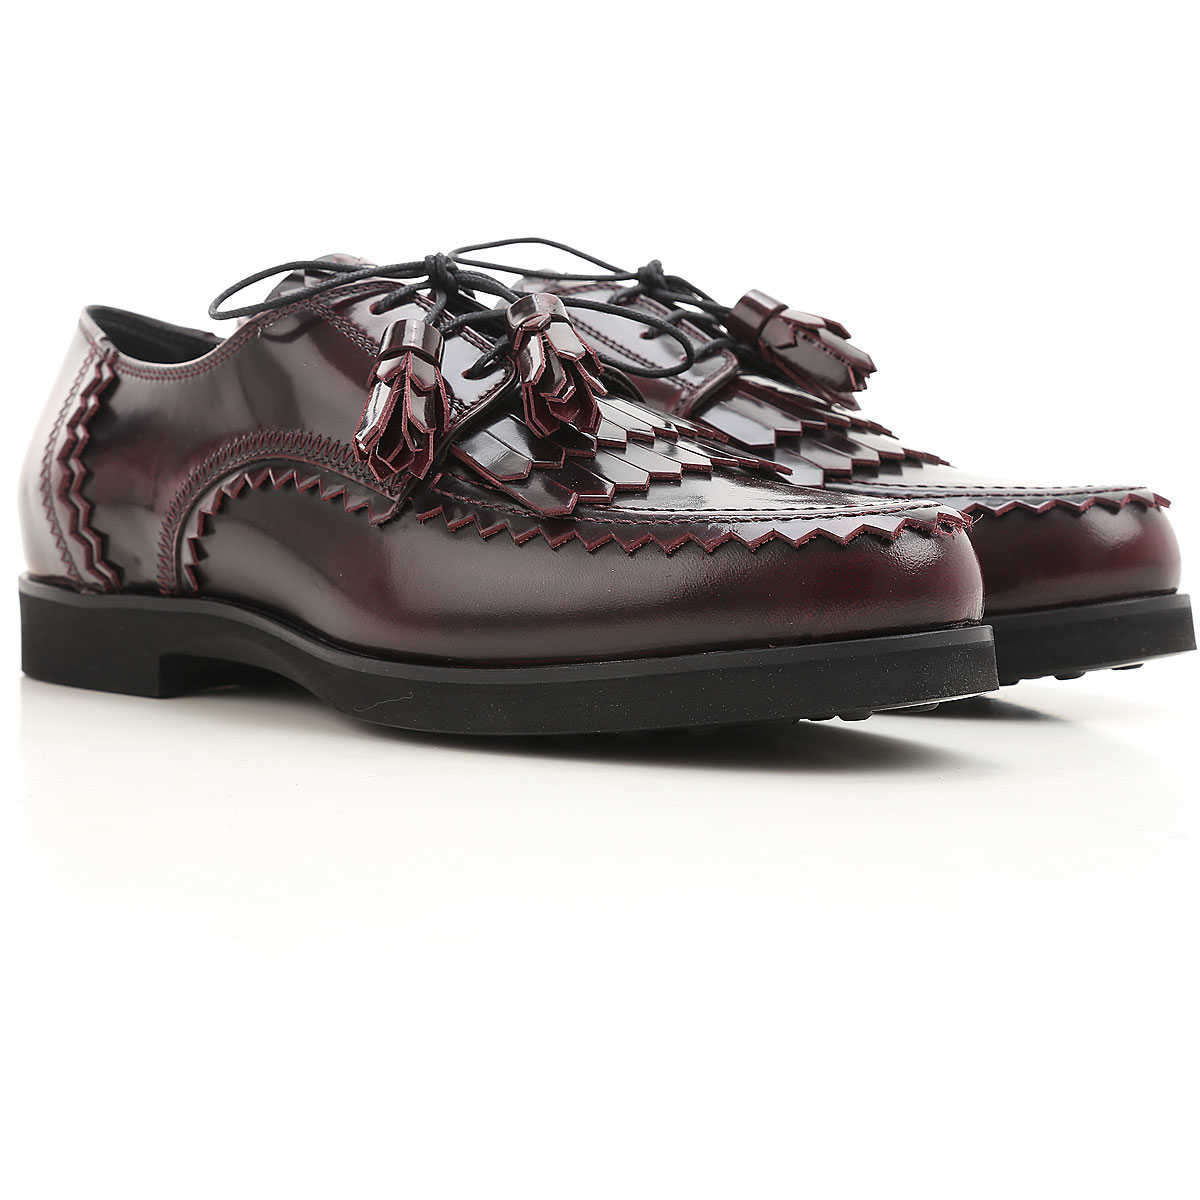 Tods Womens Shoes On Sale